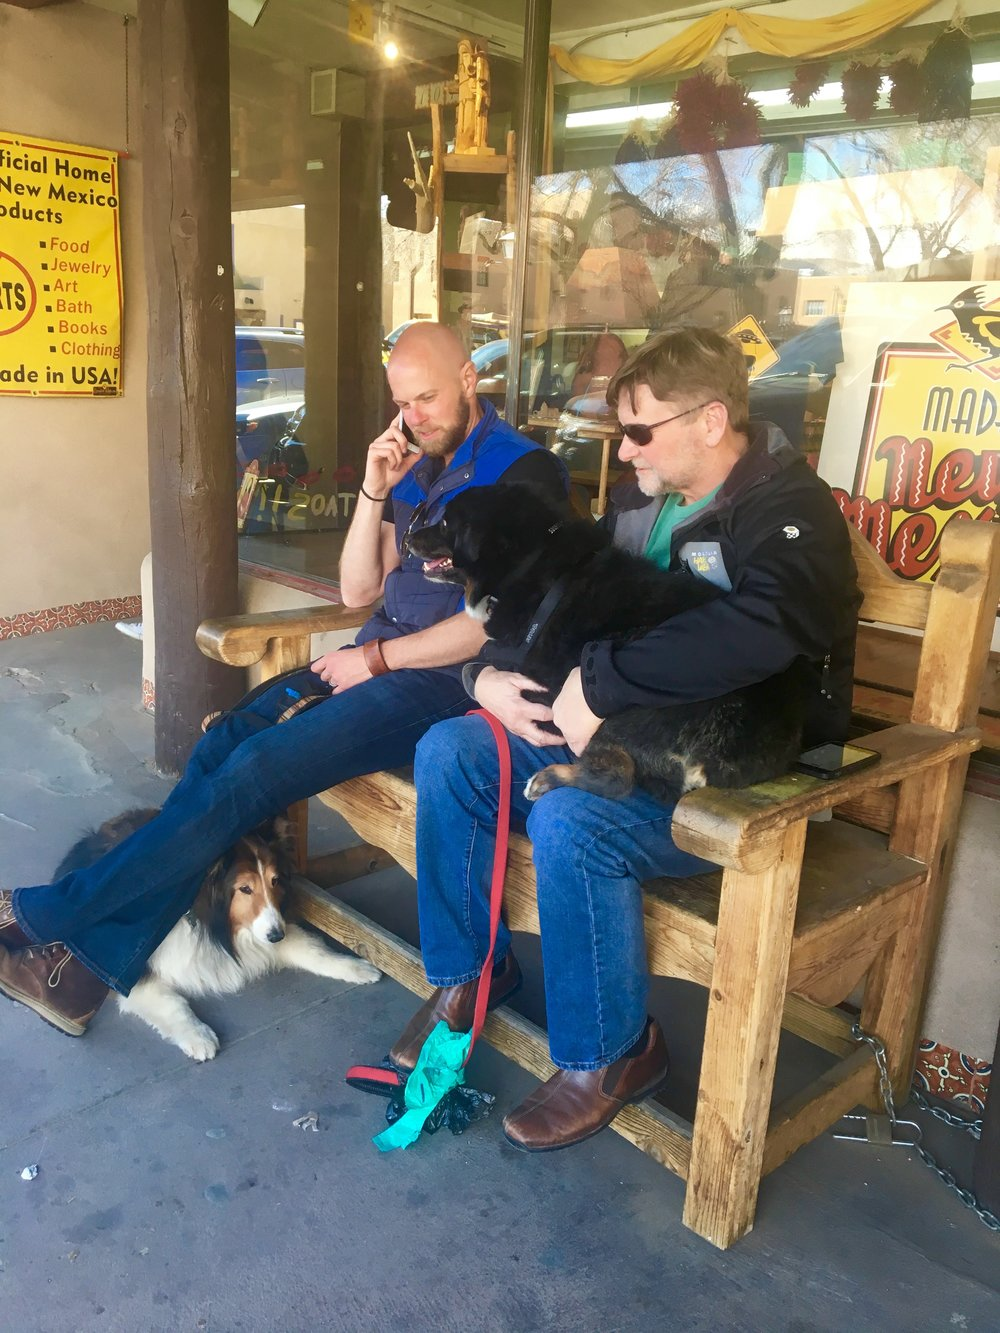 The boys keeping themselves busy while the girls shop in Taos.